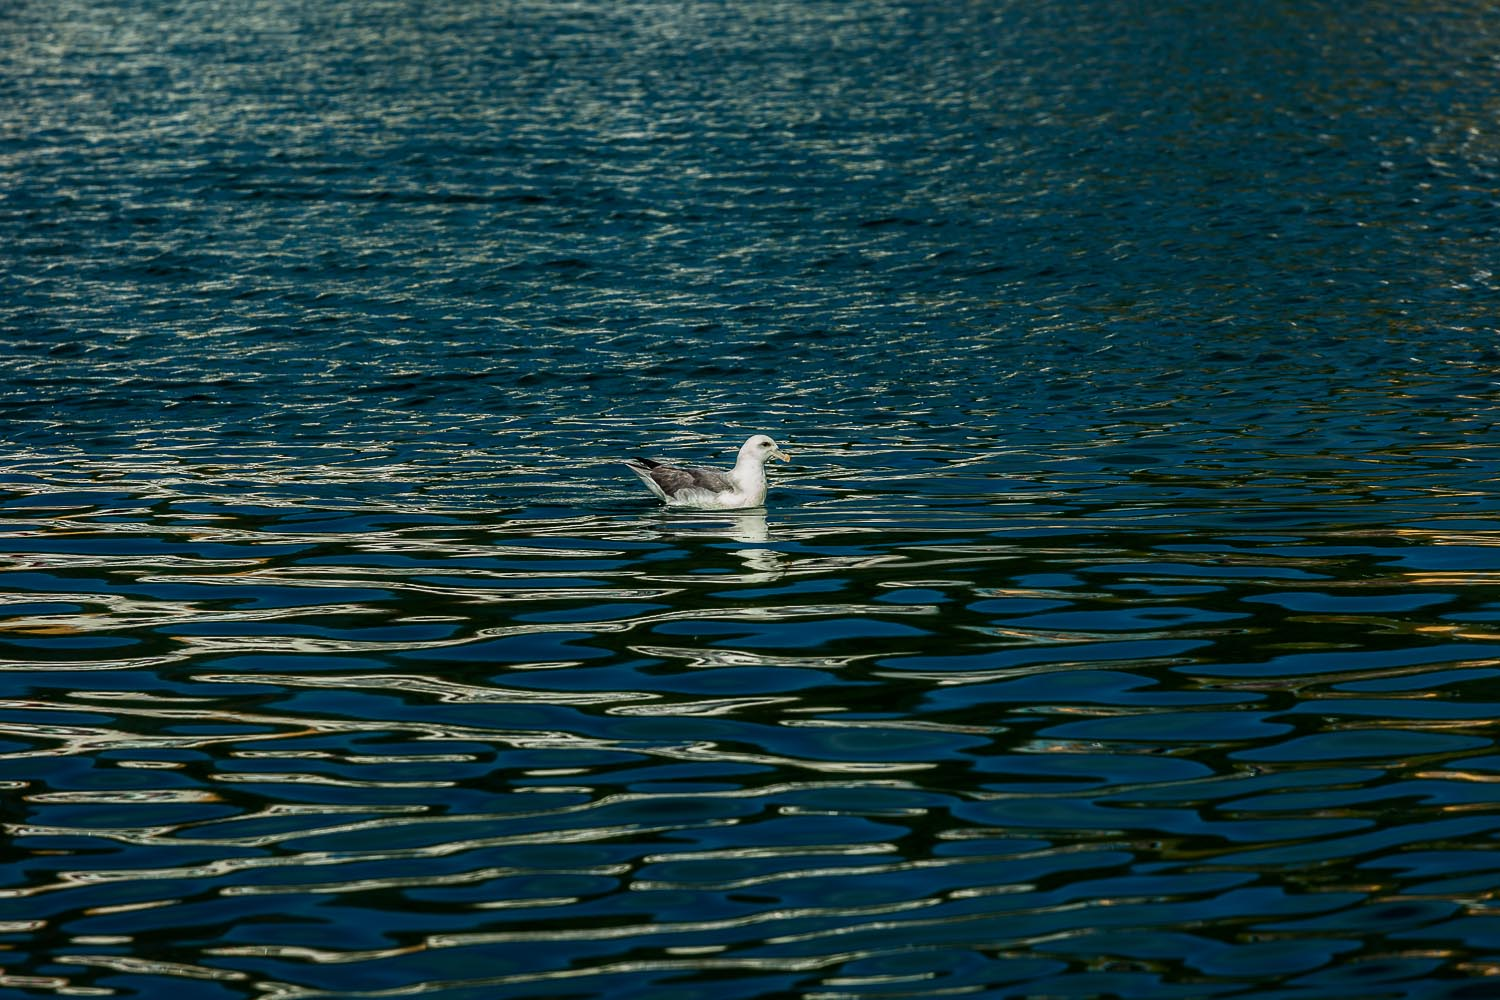 Beautiful patterns of light and dark surround a seagull on the waters of Skjalfandi Bay, Húsavik, Iceland.   Canon 5D Mark II camera, Canon 70-200mm  f 4 and Canon 1.4x Extender @ 280mm. 1/320 second  f 8 ISO 400.